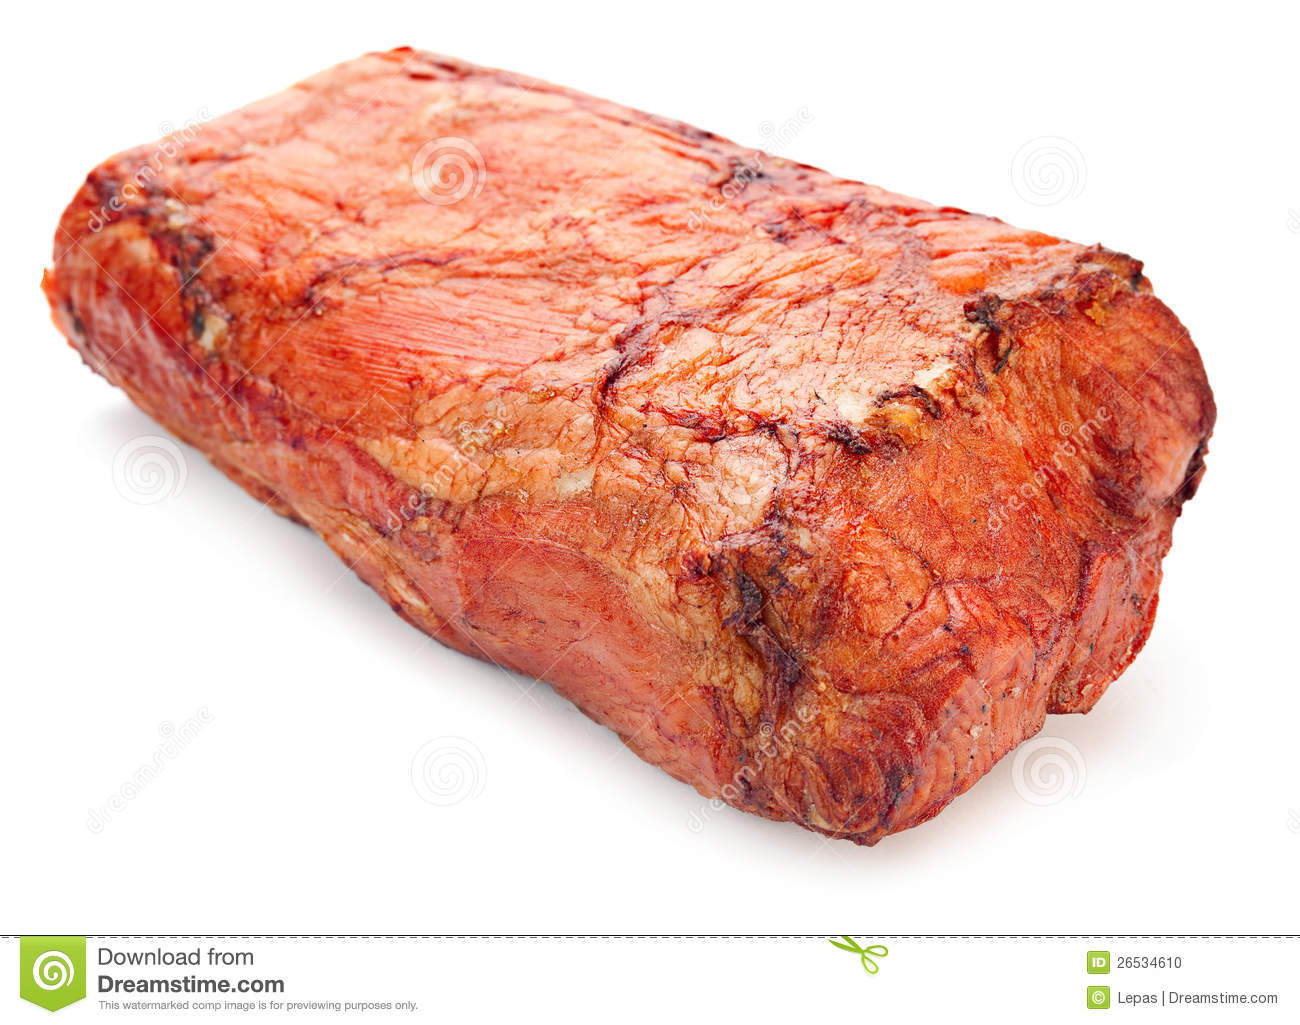 Smoked pork meat stock photo. Image of nobody, textured - 26534610 for Pork Meat Clipart  300lyp